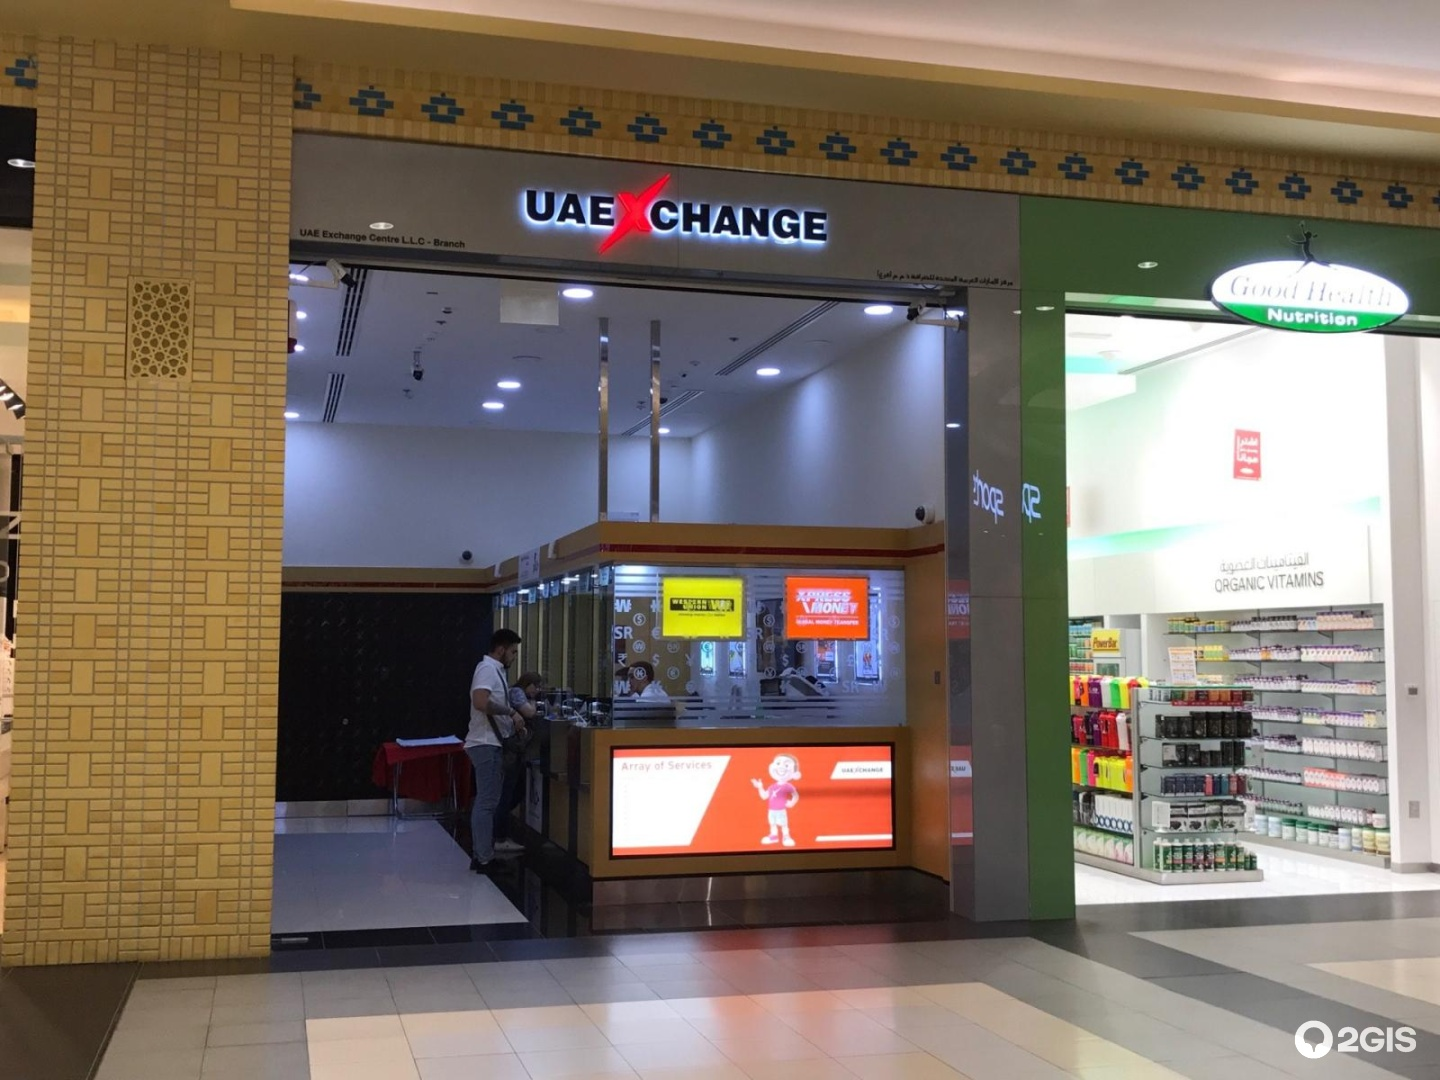 UAE Exchange, 1, Garden Cross Road (Dubai), UAE: photos — 2GIS